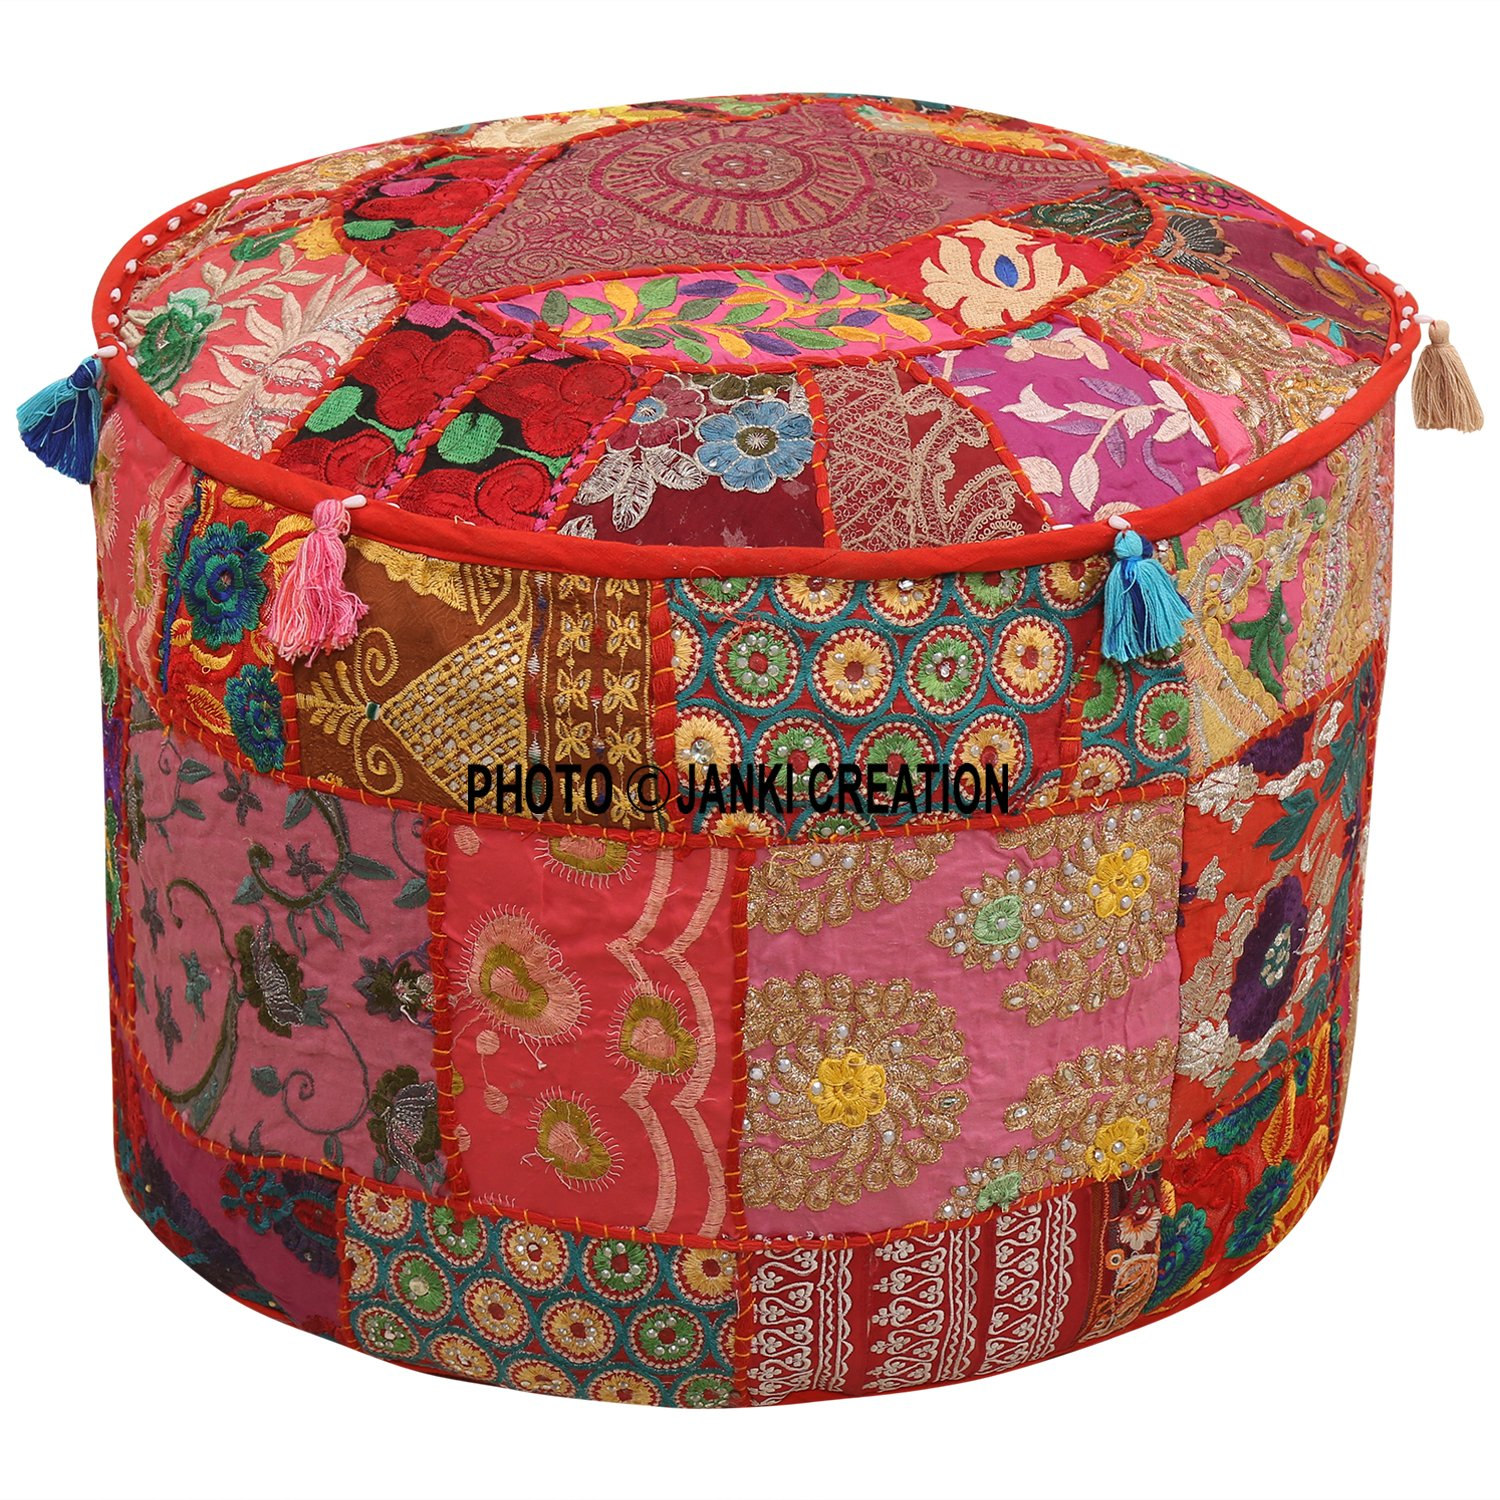 Indian Round Patchwork Embroidered Ottoman Pouf Bohemian Indian Decorative Patchwork Ottoman Pouf,Home Living Room Vintage Pouf Size 14 X 22 X 22 Inches Embellished Ottoman Stool Pouf Cover,Home Decor Janki Creation